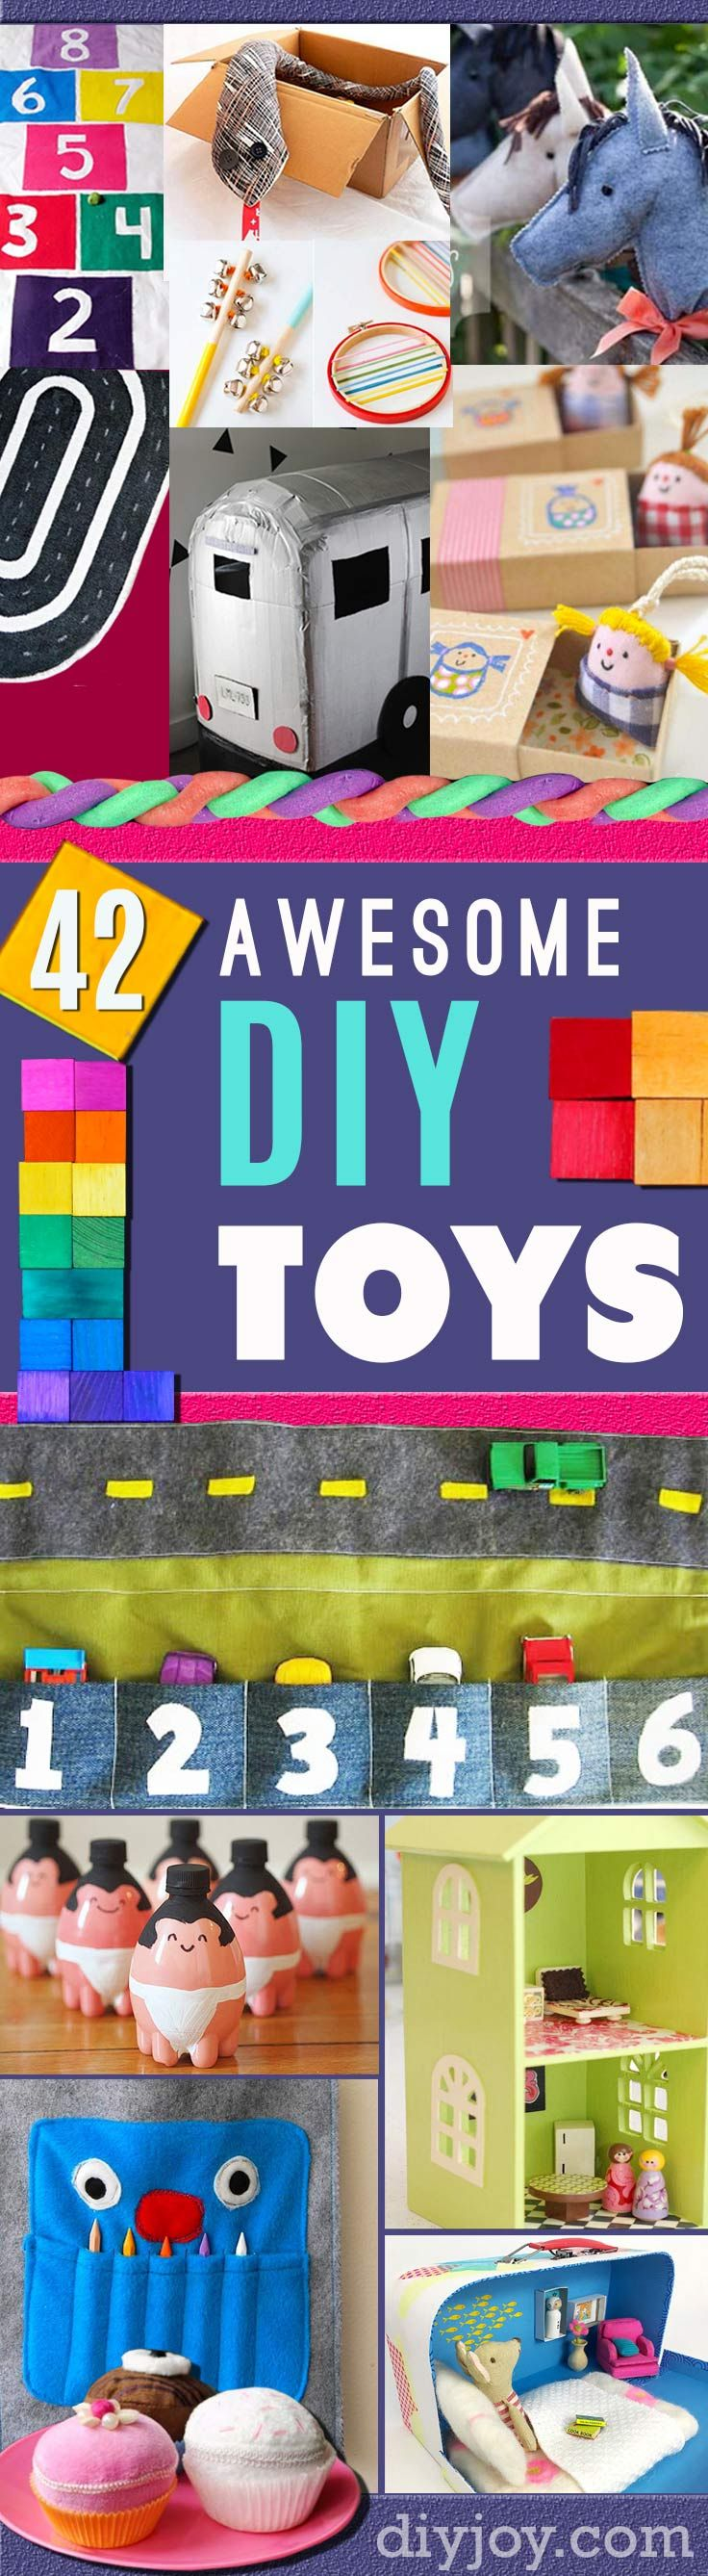 DIY Craft: We know you want to make your <a class=